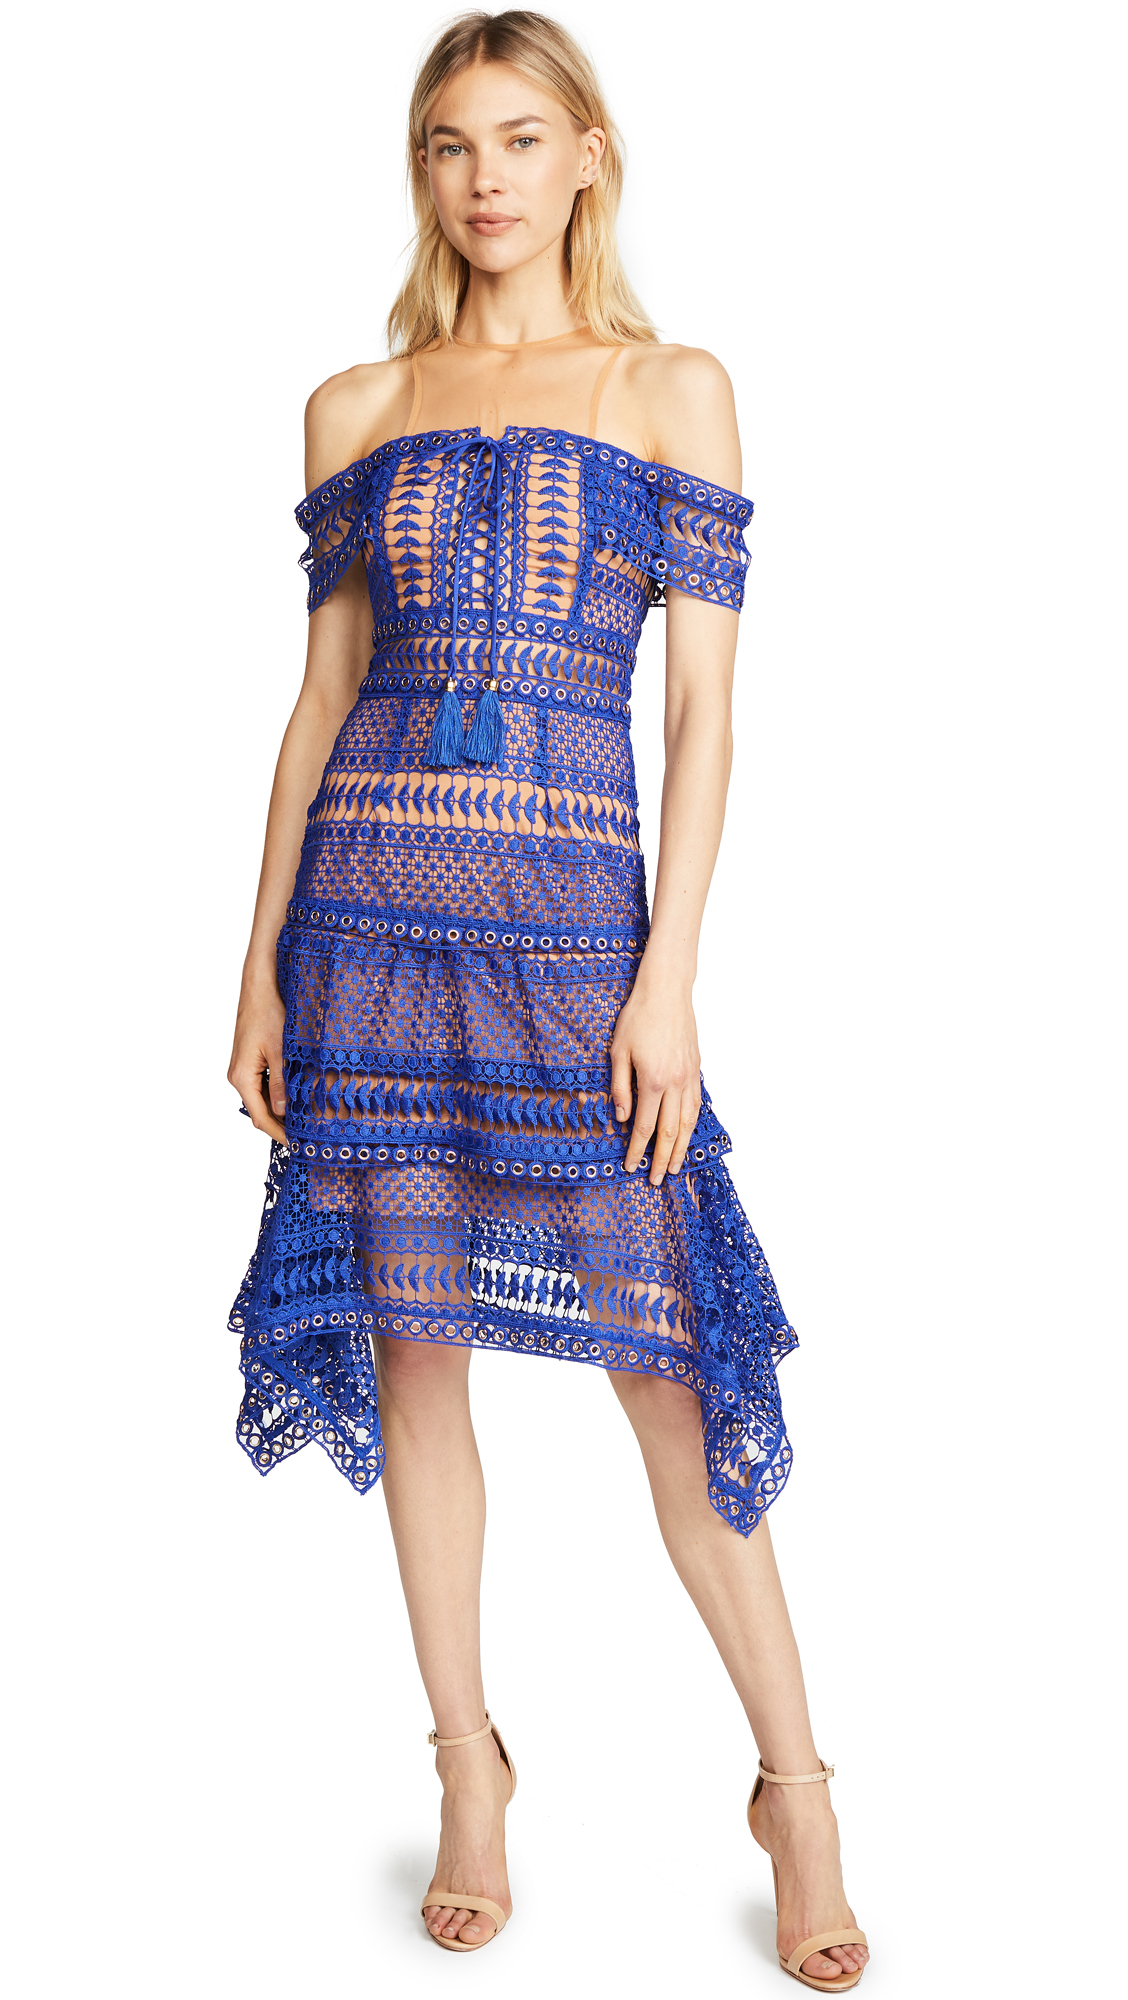 THURLEY Skyfall Dress in Royal Blue